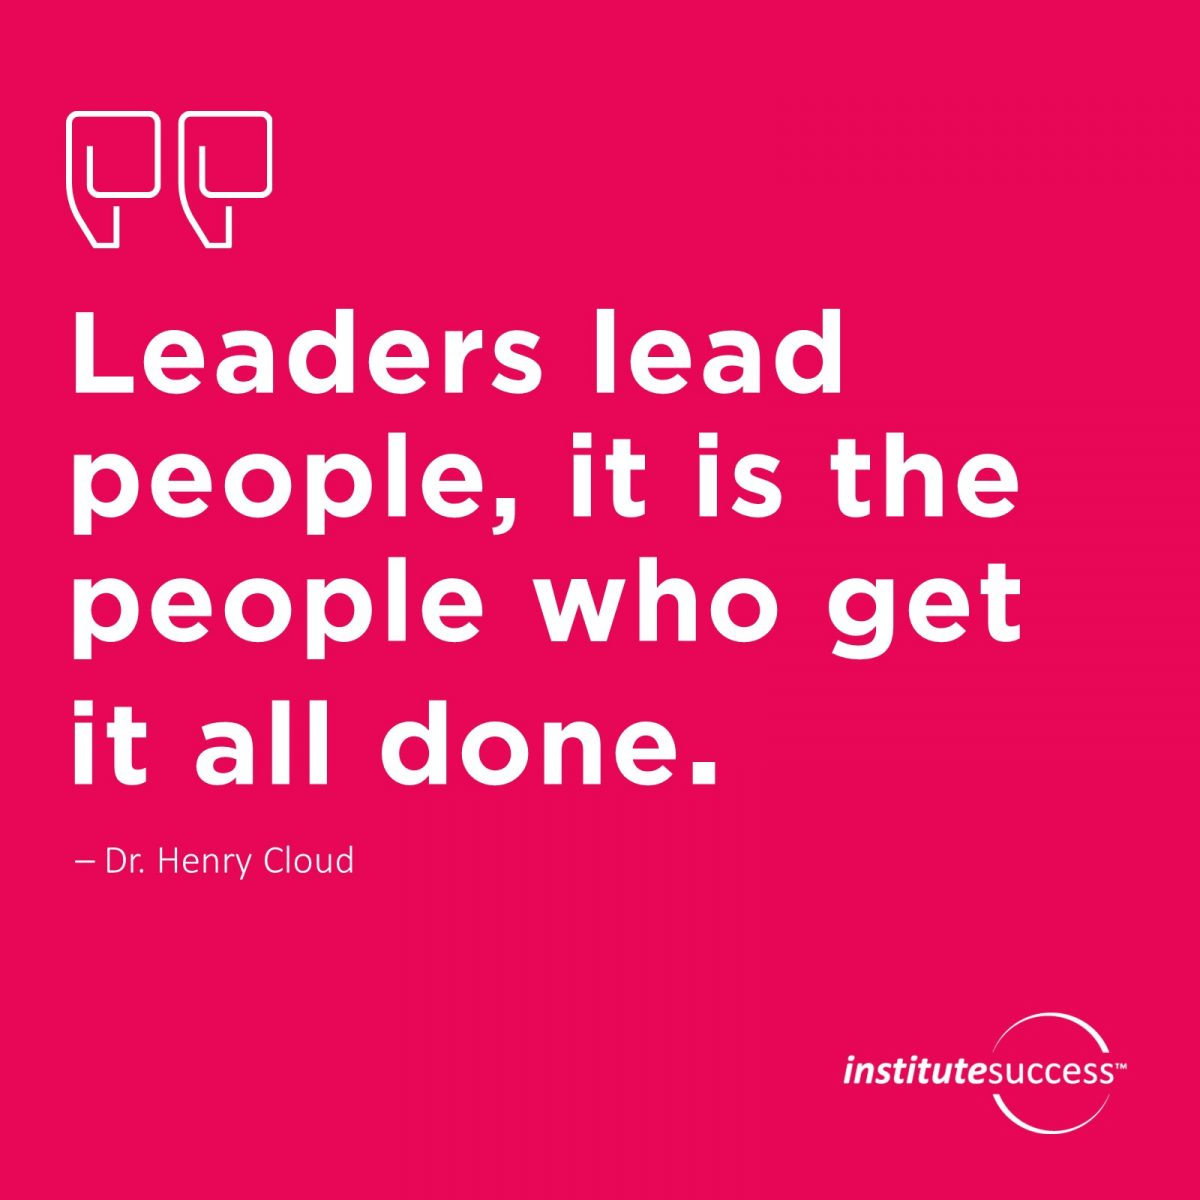 Leaders lead people, it is the people who get it all done.	Dr. Henry Cloud